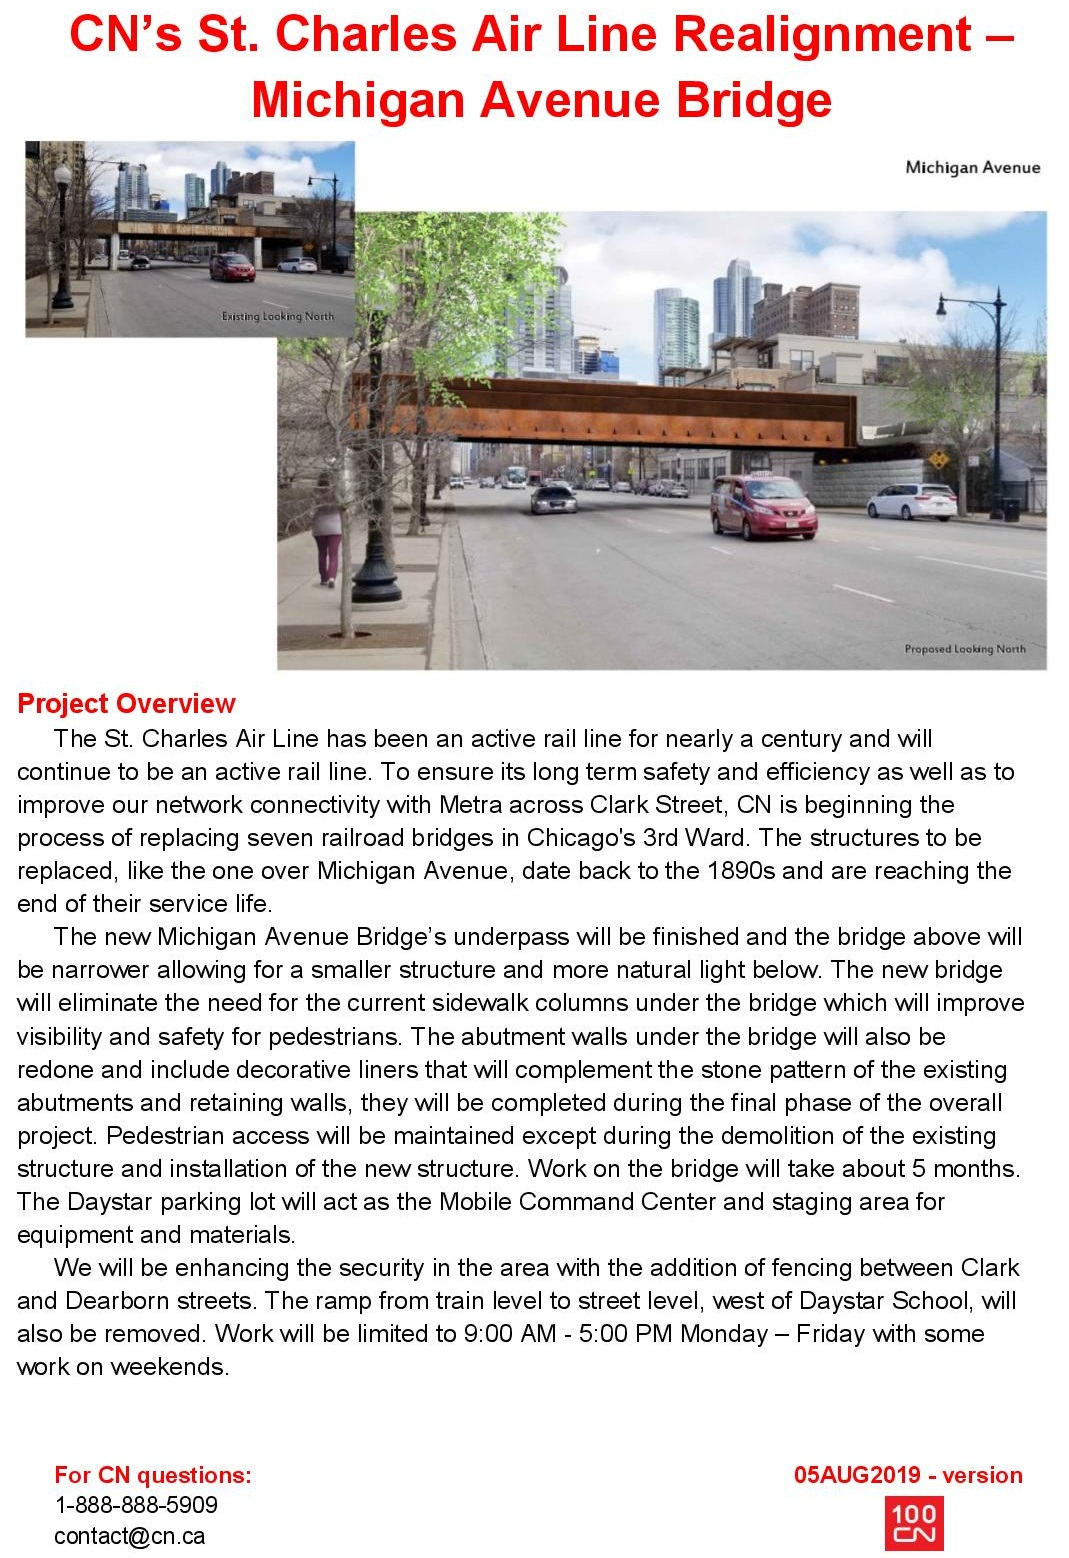 SCAL - Michigan Ave Bridge Overview - 05AUG19-page-001